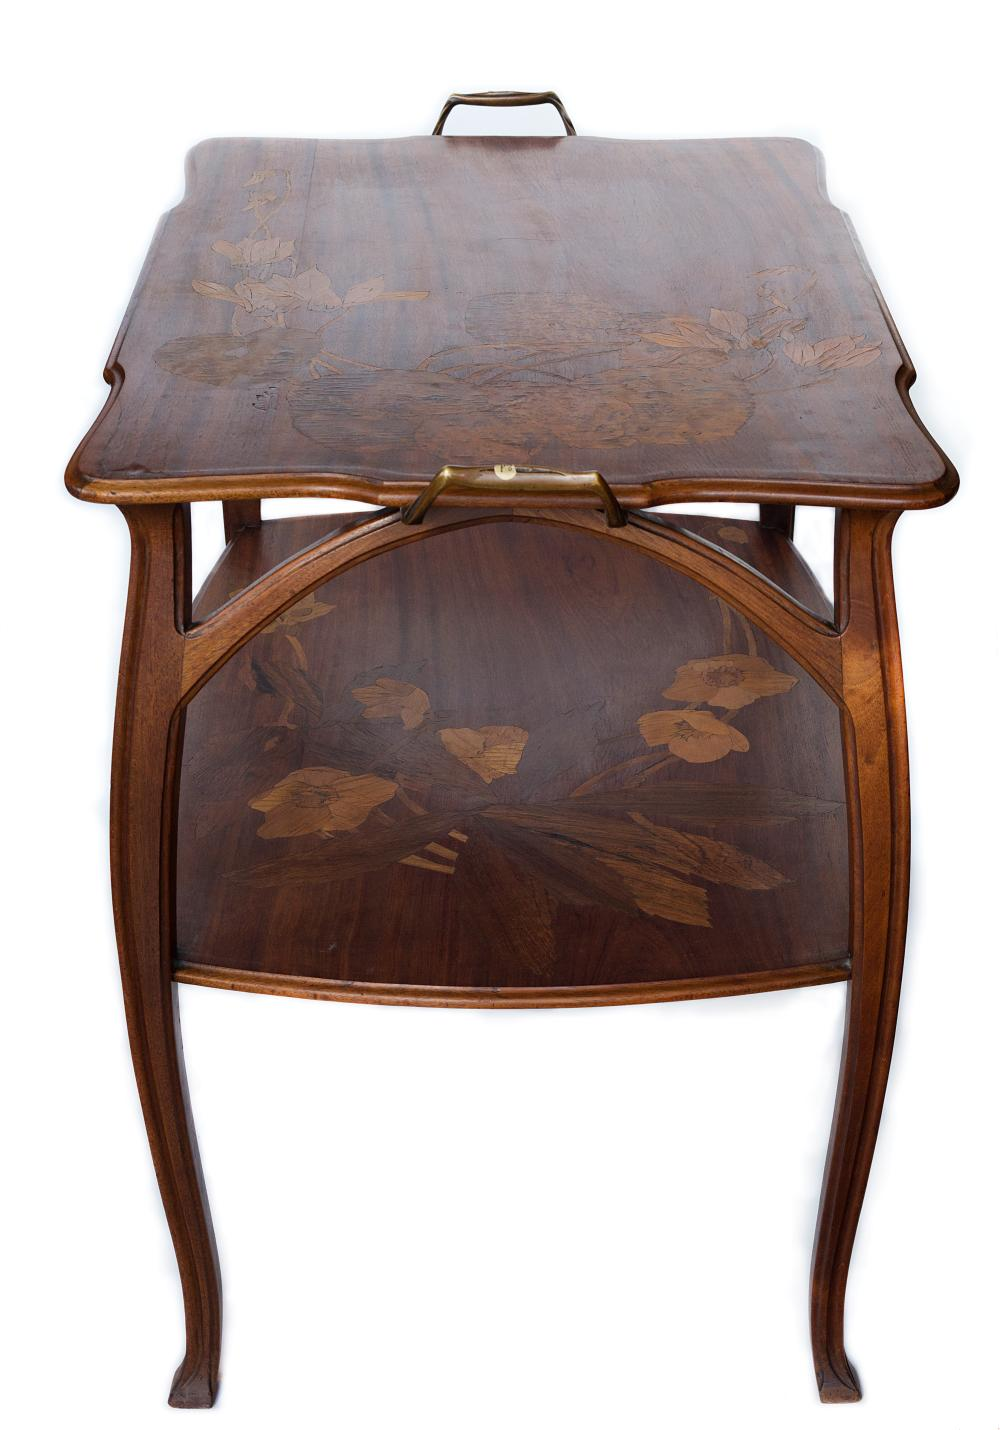 Stunning Art Nuevu Ecole De Nancy signed C. Gauthier Nancy gorgeous inlaid table